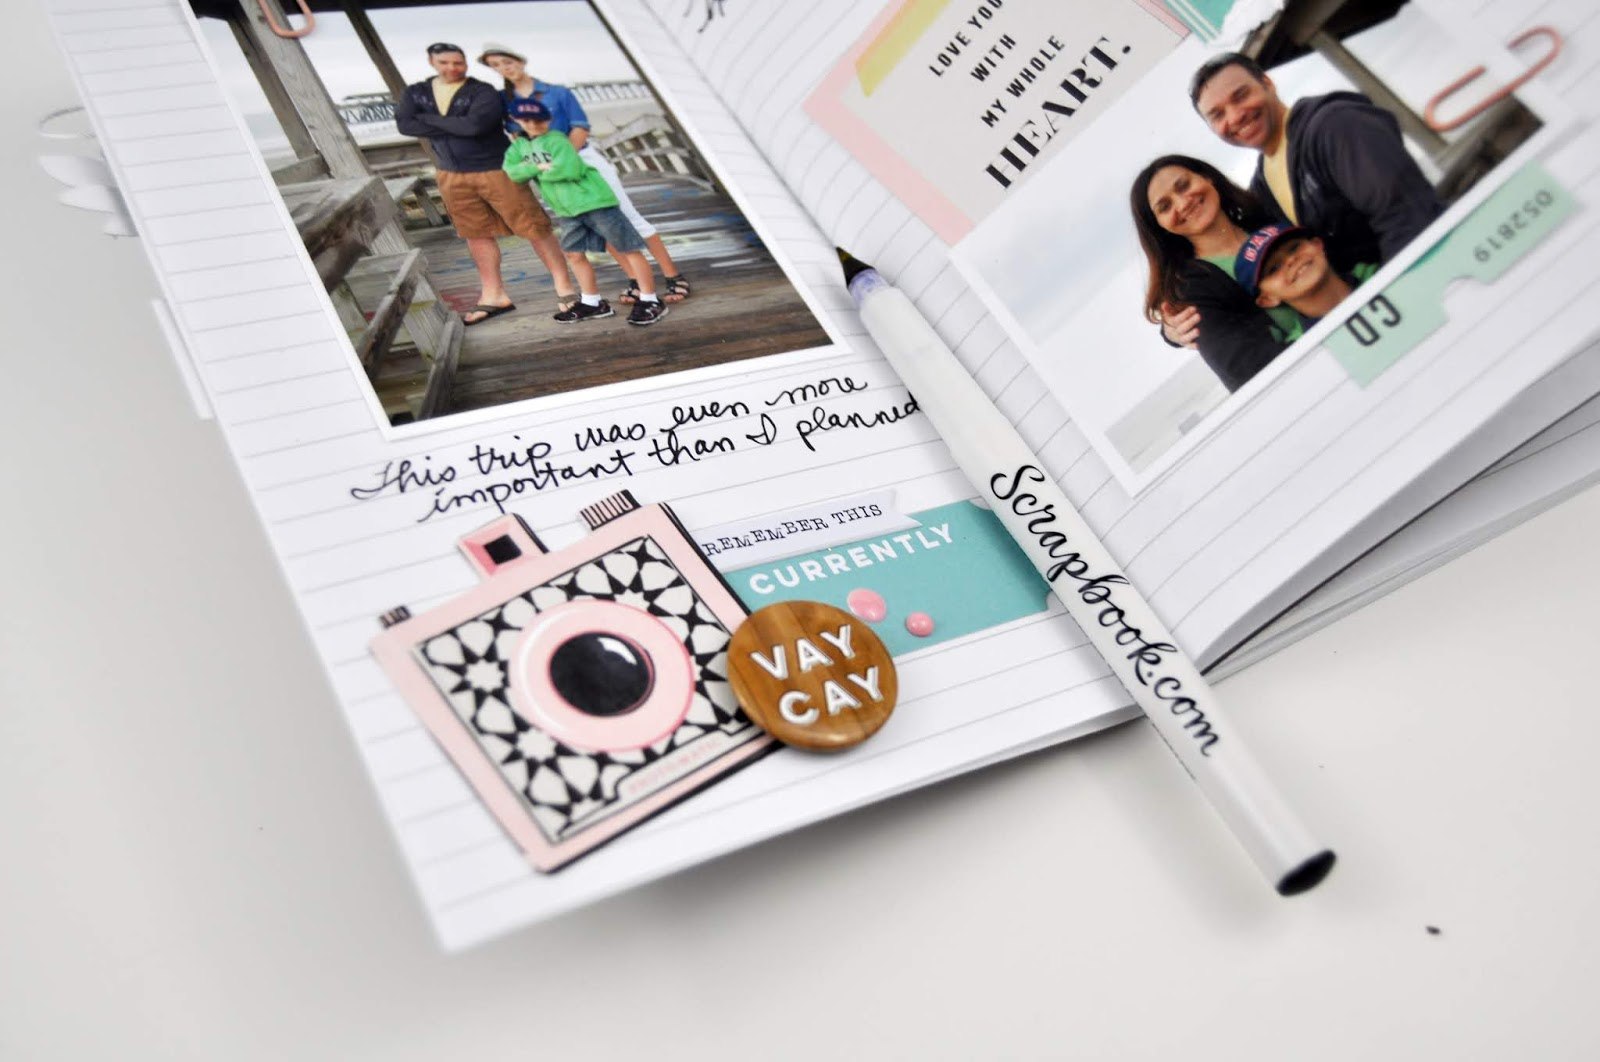 Best option for a Slick Writer pen is from Scrapbook.com. Writes easily on Traveler's Notebooks, cards, photos, and more! Learn more at www.jengallacher.com. #scrapbooking #lifeishandemade #scrapbookdotcom #jengallacher